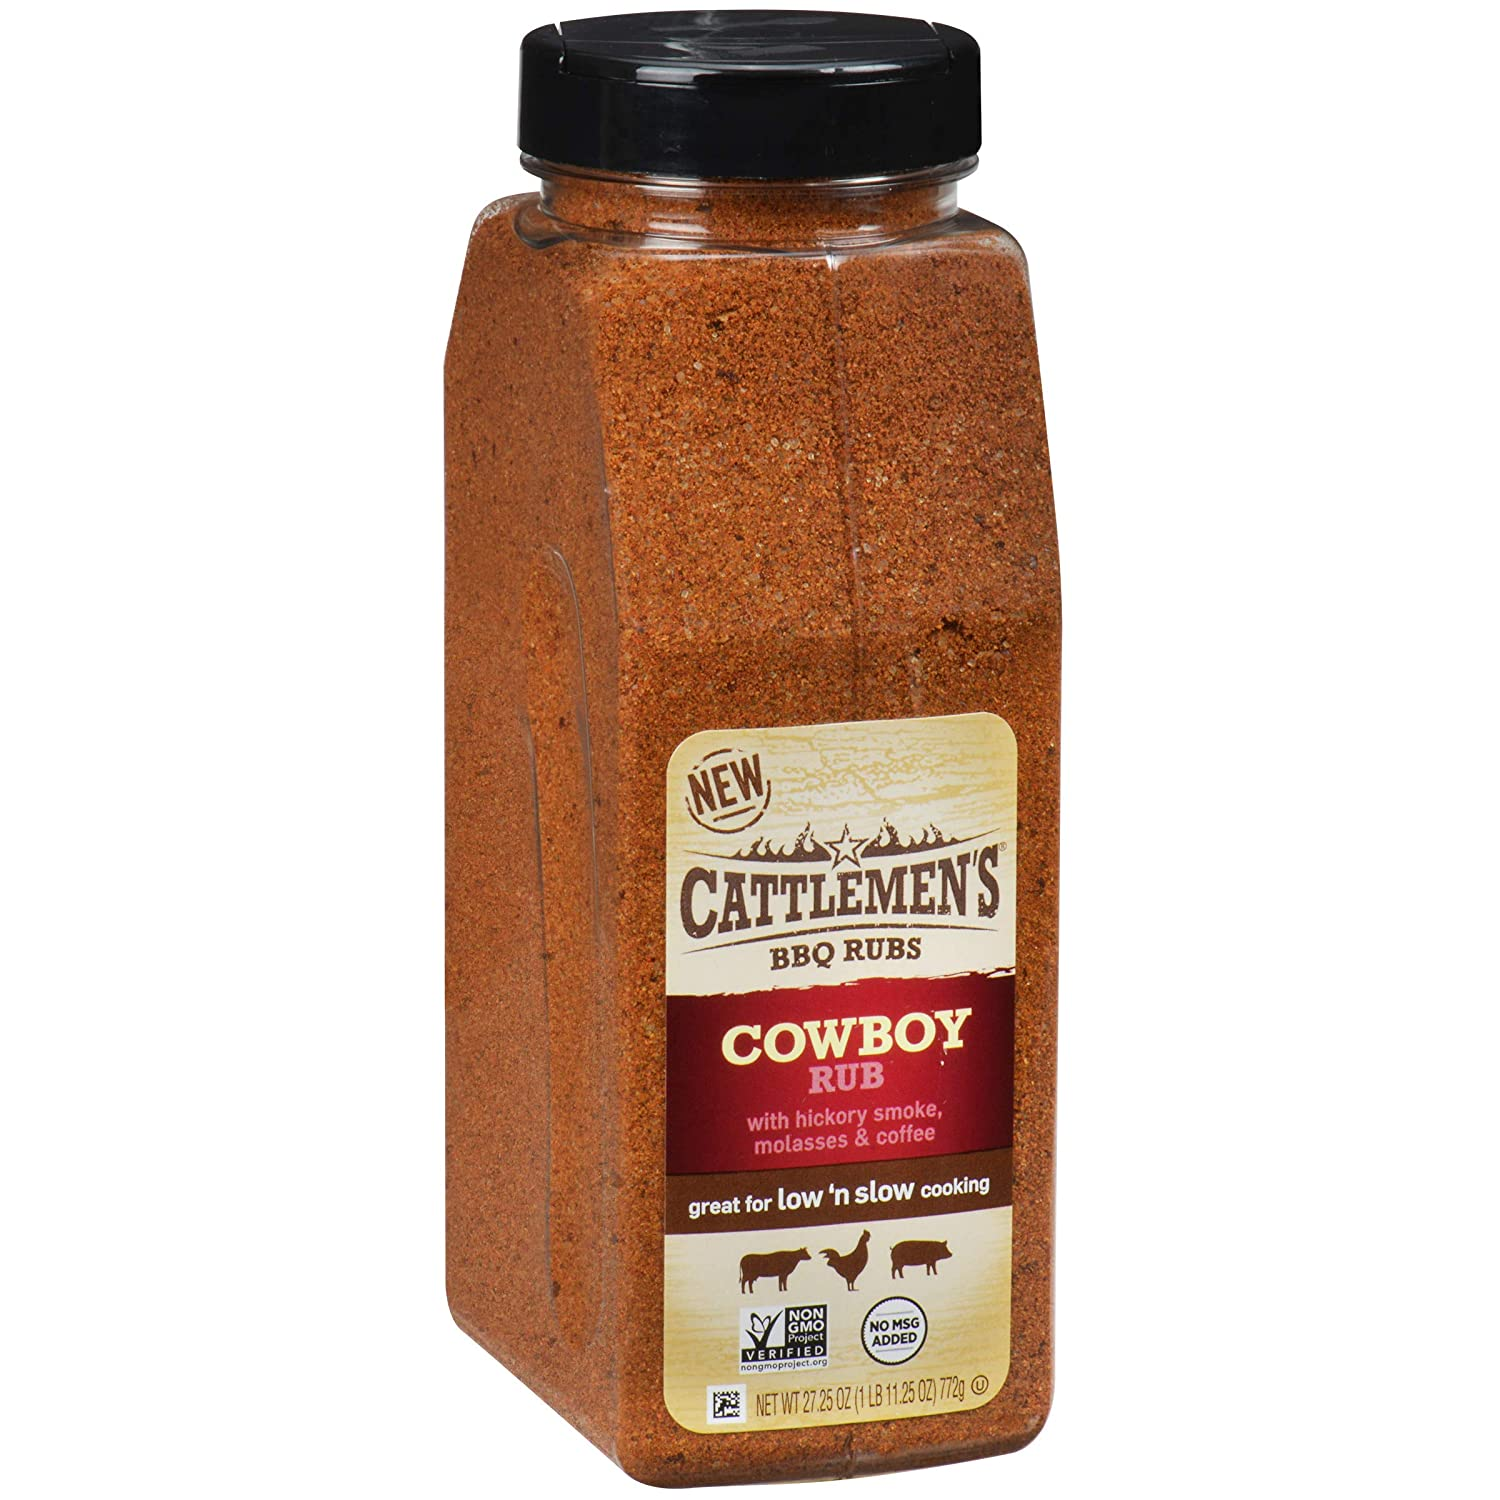 Cattlemen's Cowboy Max 72% OFF Rub 27.25 oz of Direct stock discount One - Container Ounce